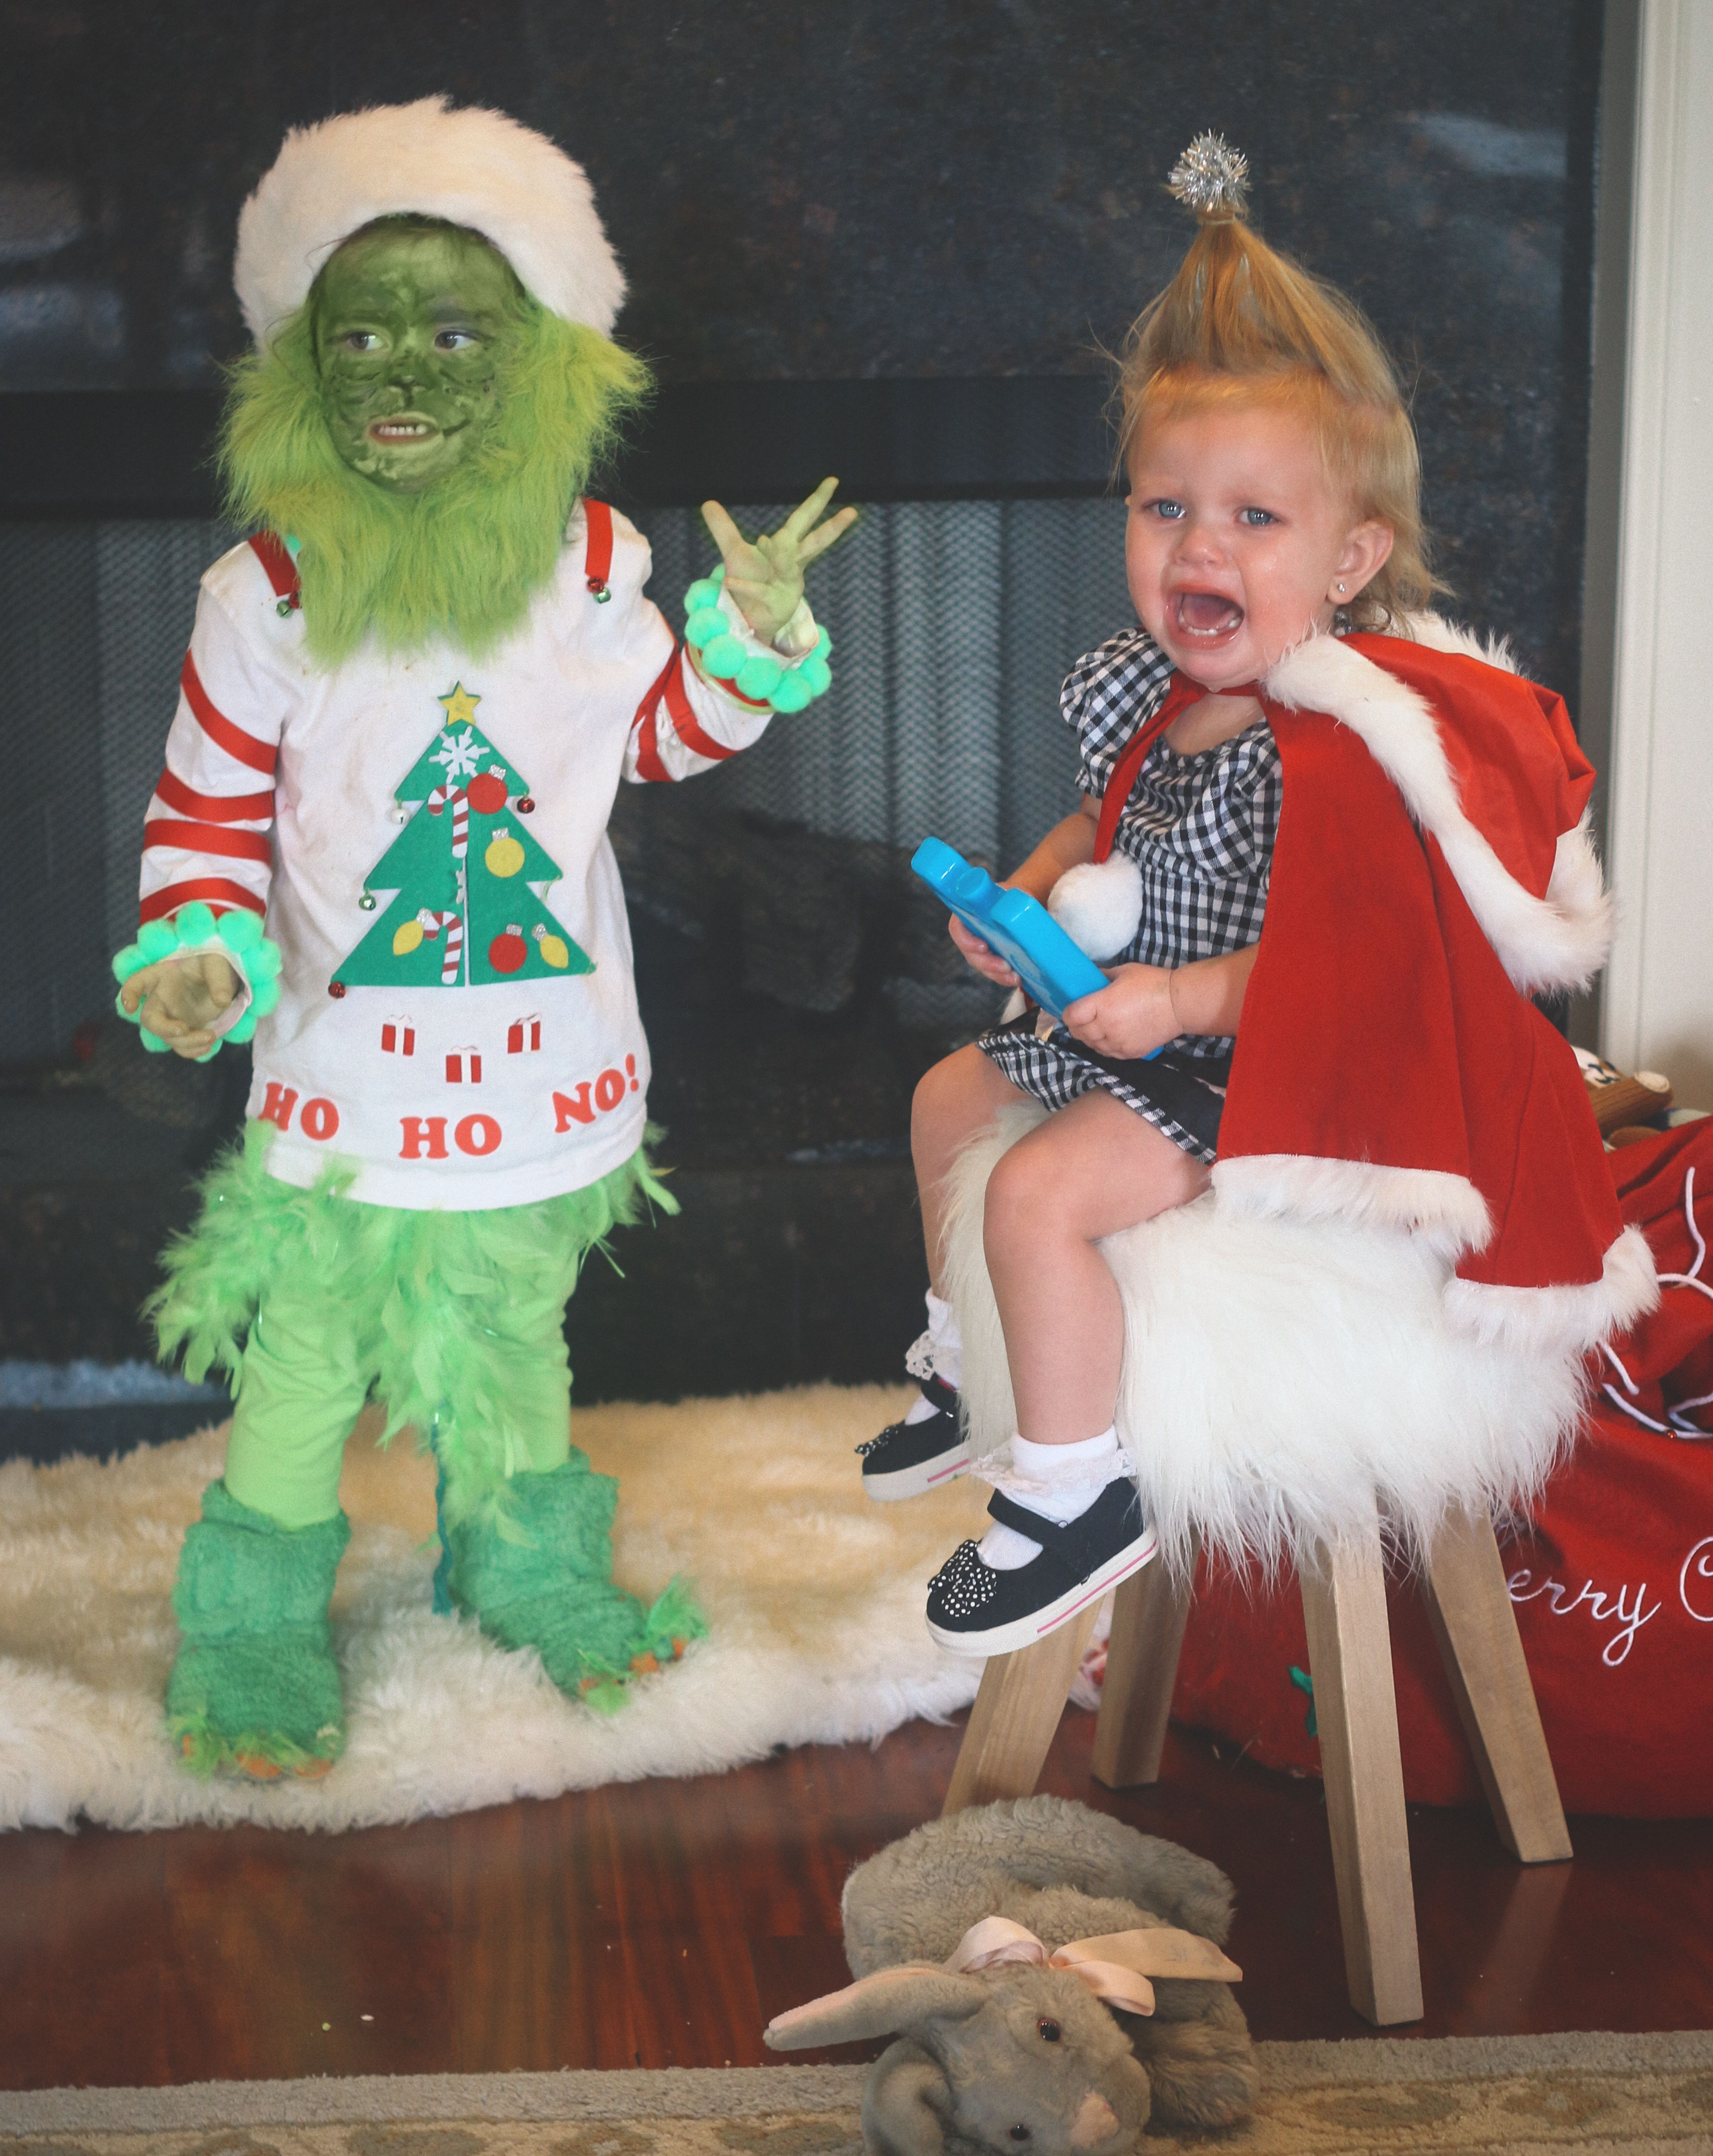 bb106f8777ff Toddler Grinch and Cindy Lou Who costume, sibling costumes | Let's ...